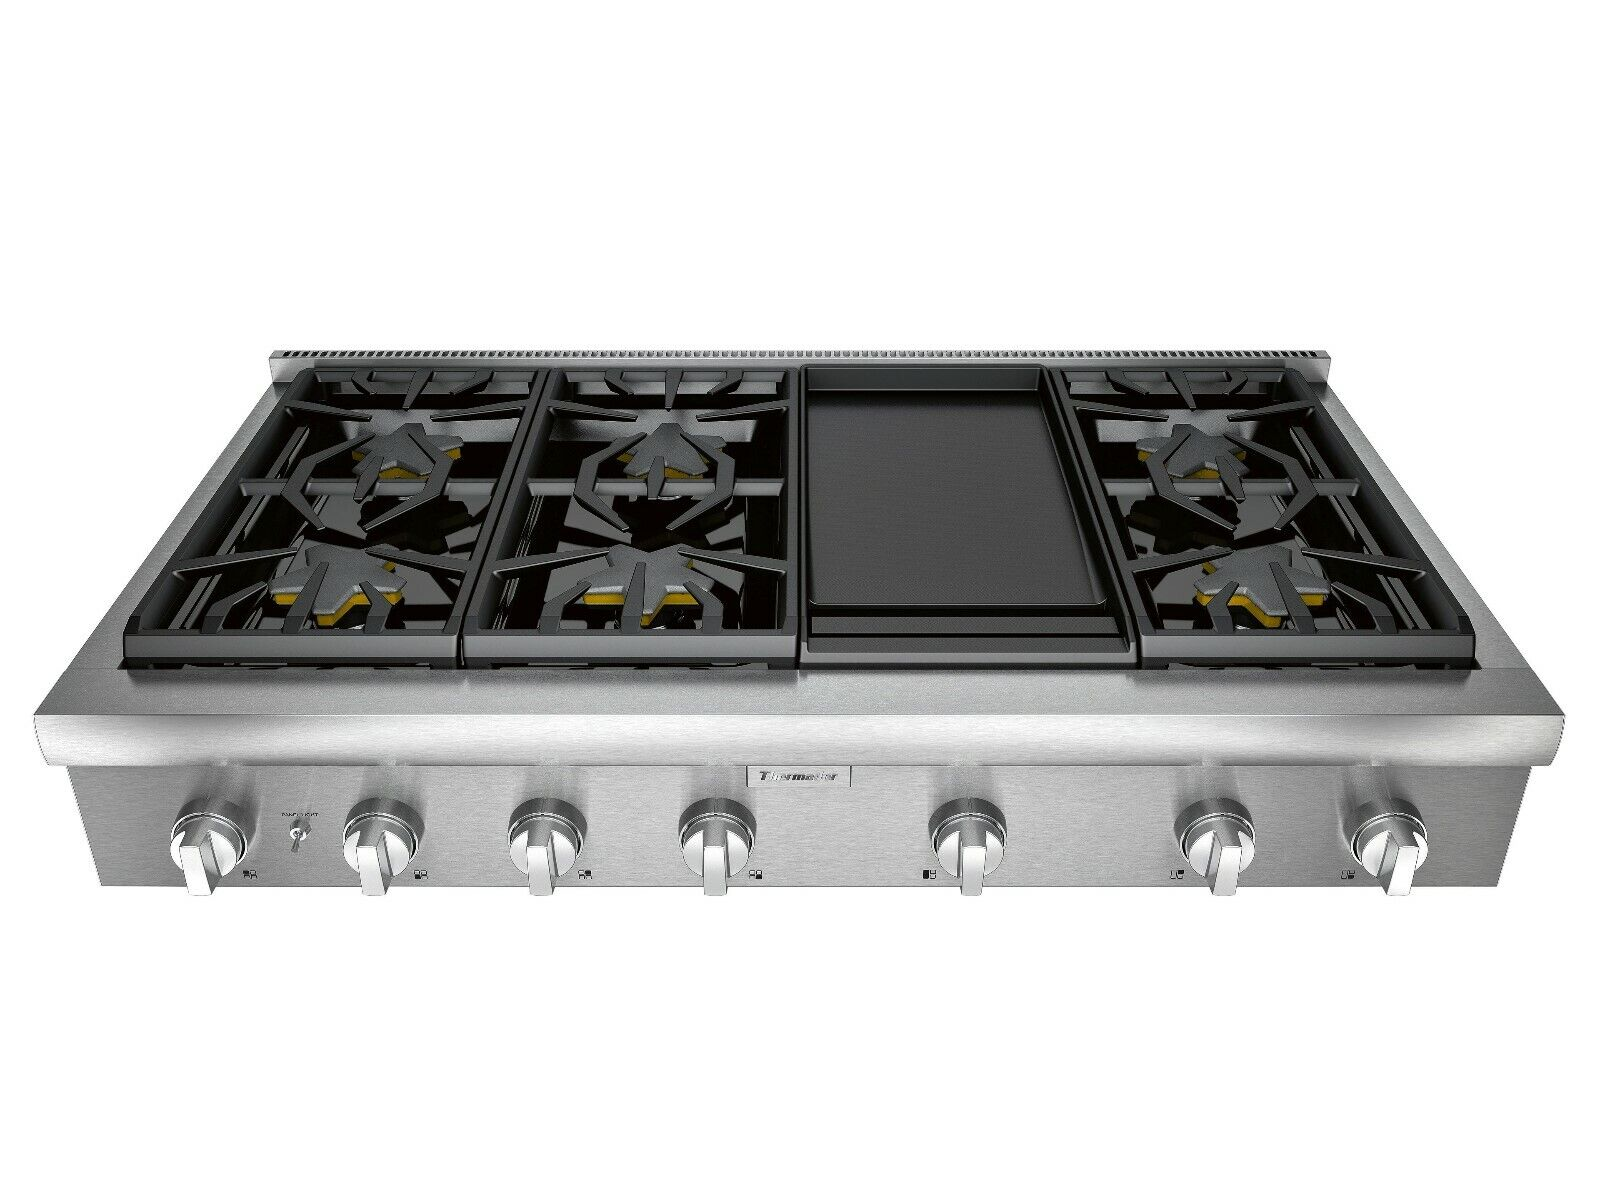 "Thermador 48"" SS 6 Burner Pro Rangetop w/ Griddle PCG486WD"